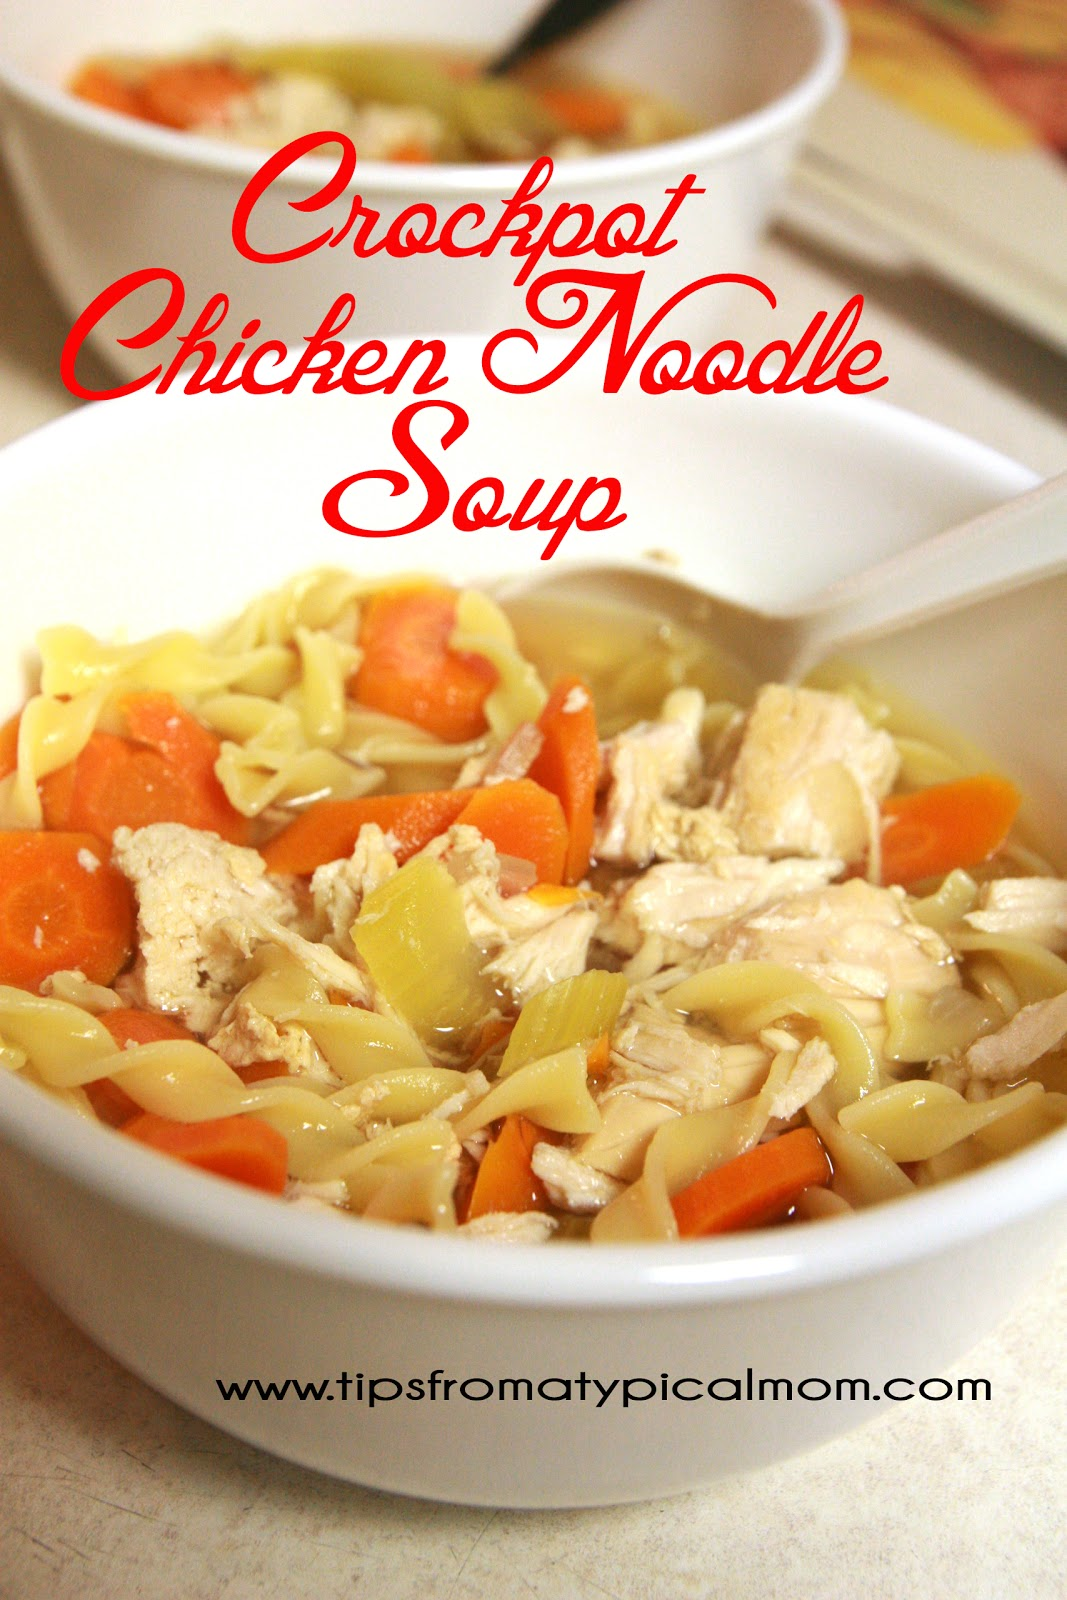 crockpot chicken noodle soup recipe tips from a typical mom